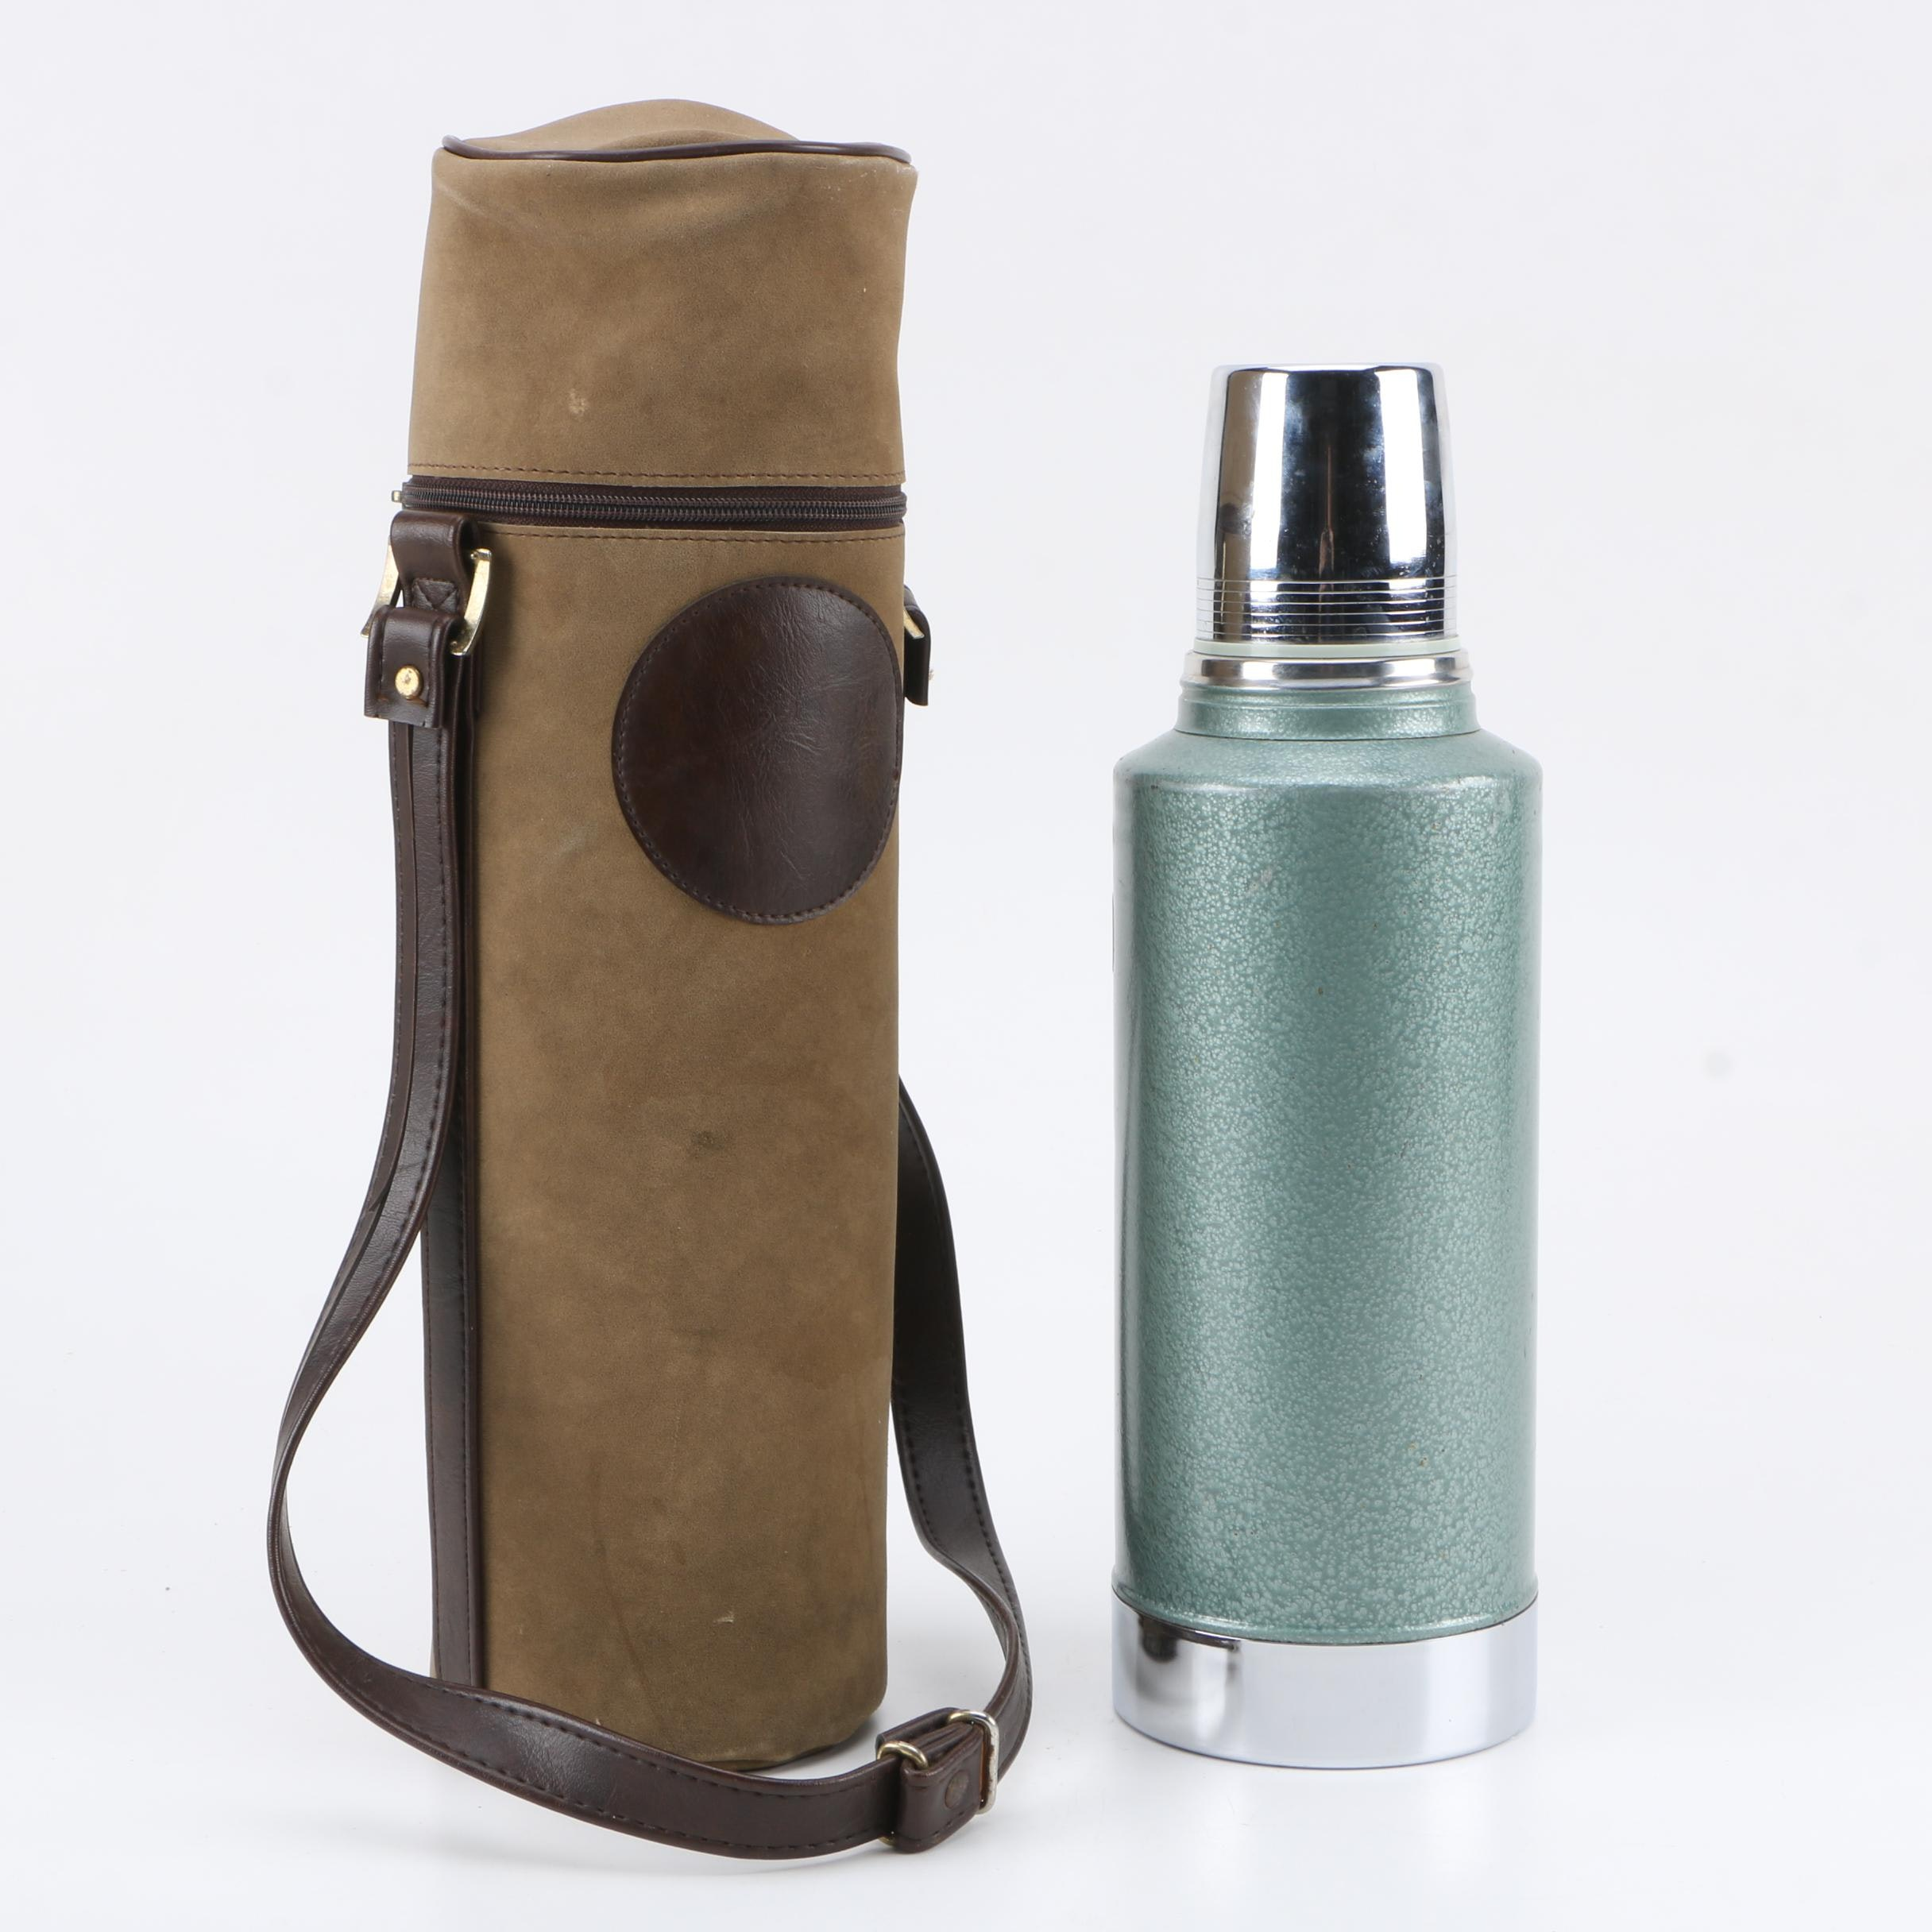 Stanley Thermos Bottle with Carrying Sleeve